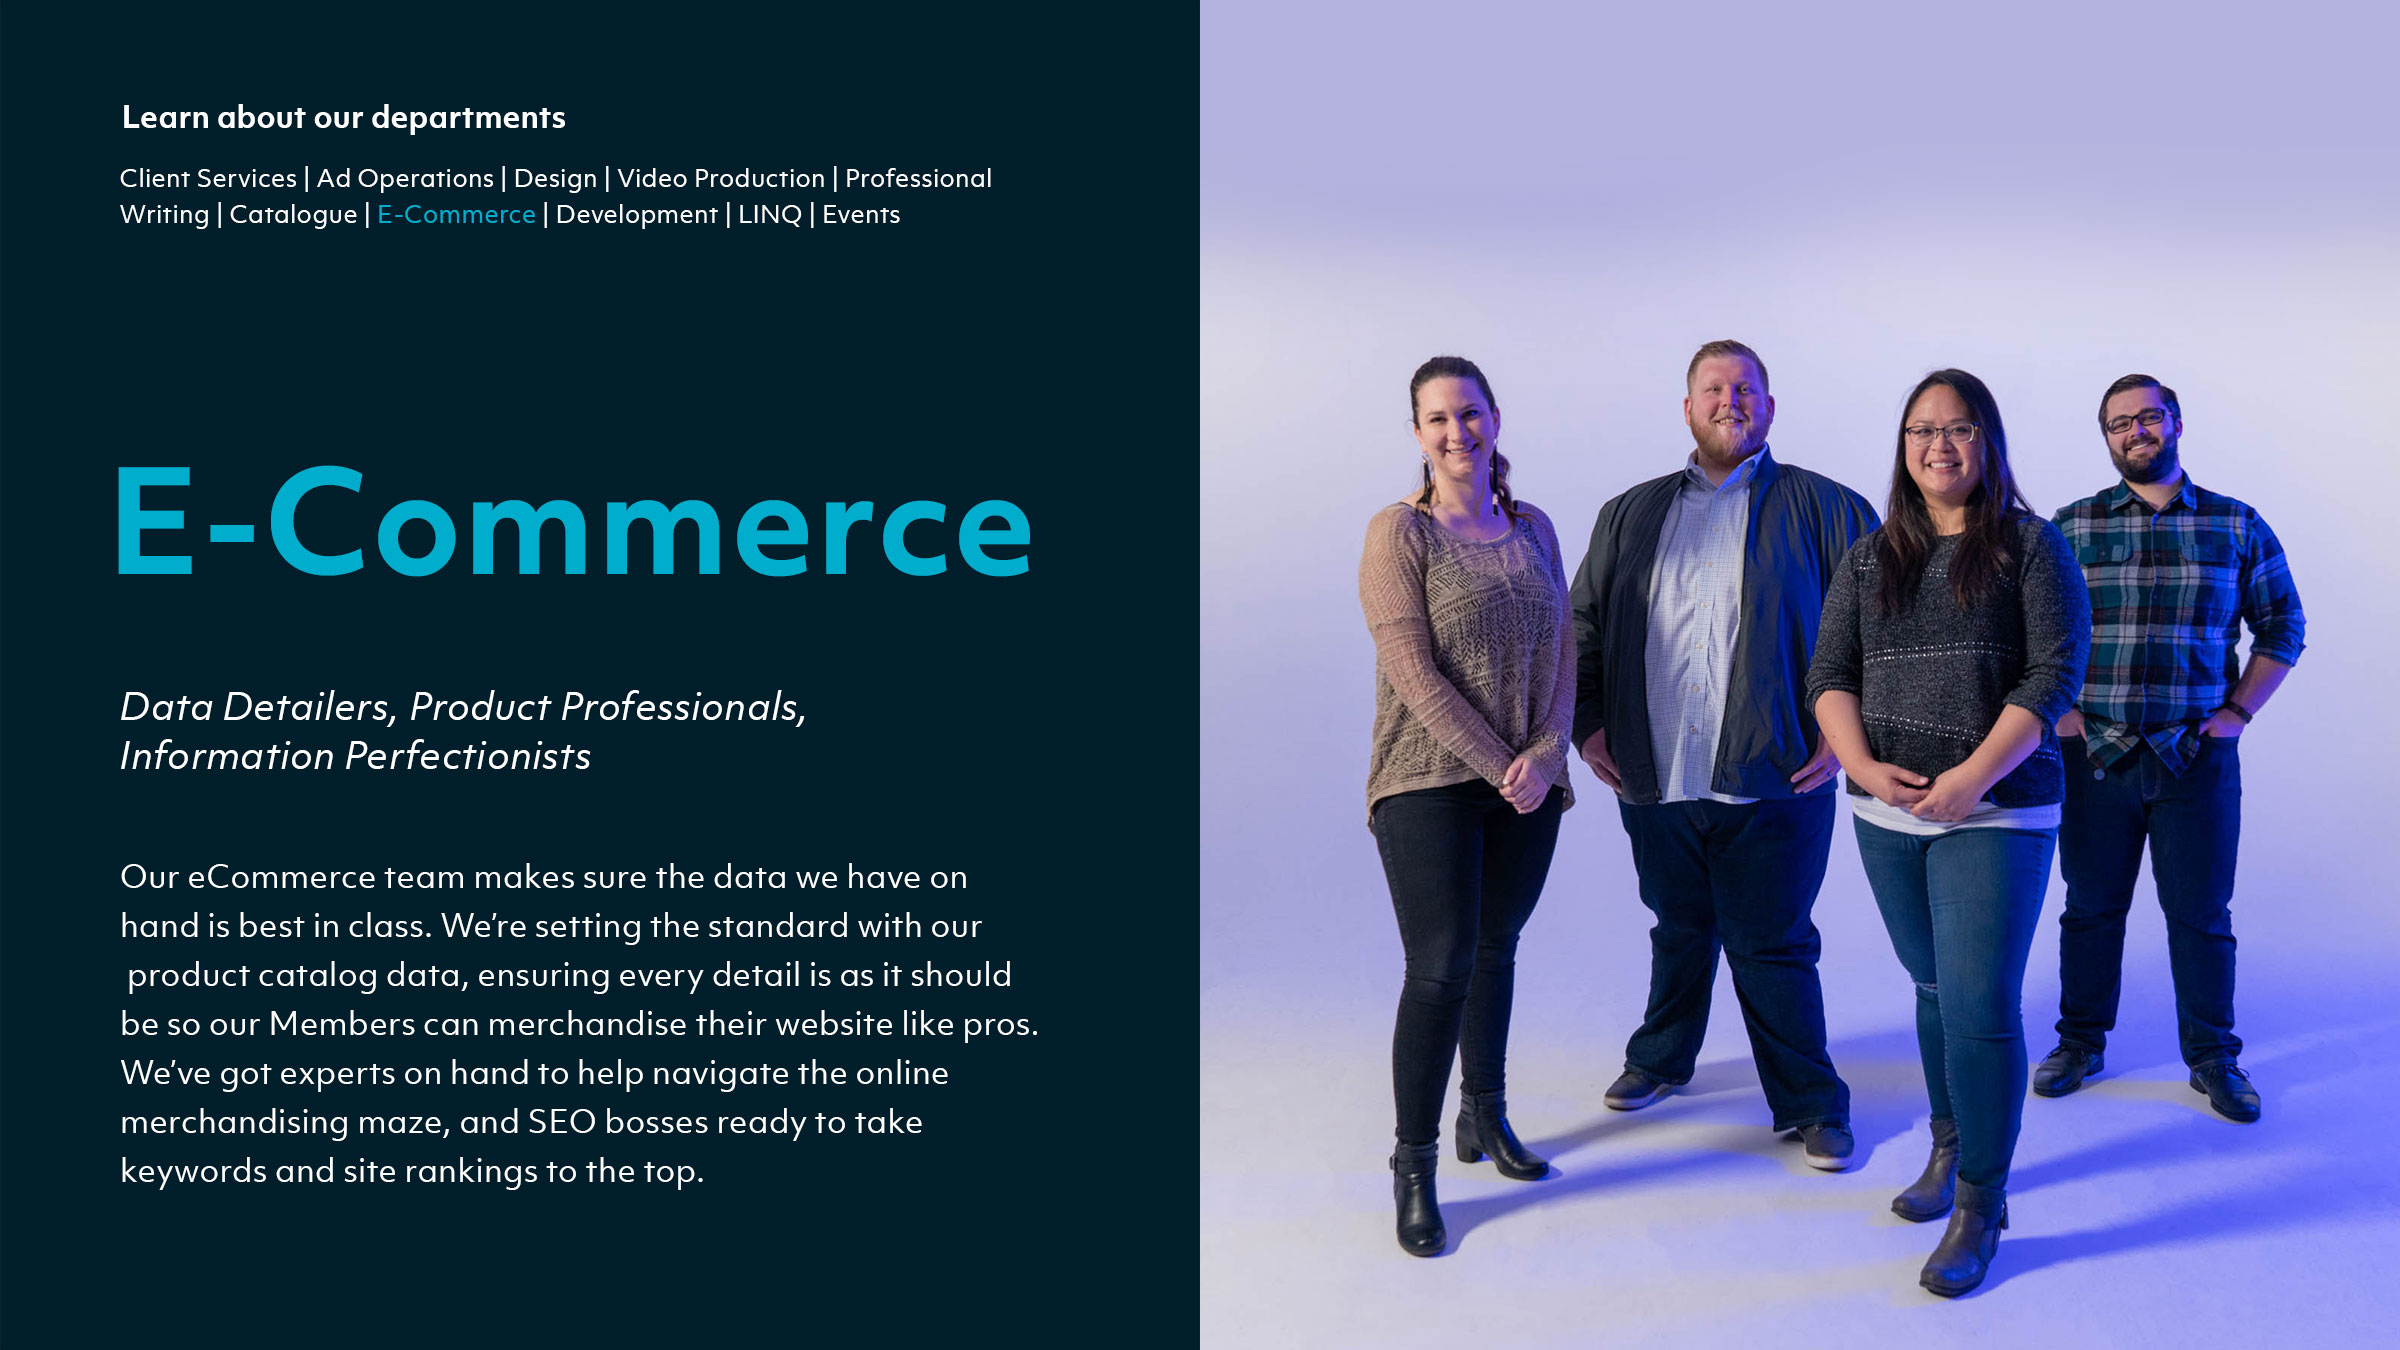 E-Commerce-Team